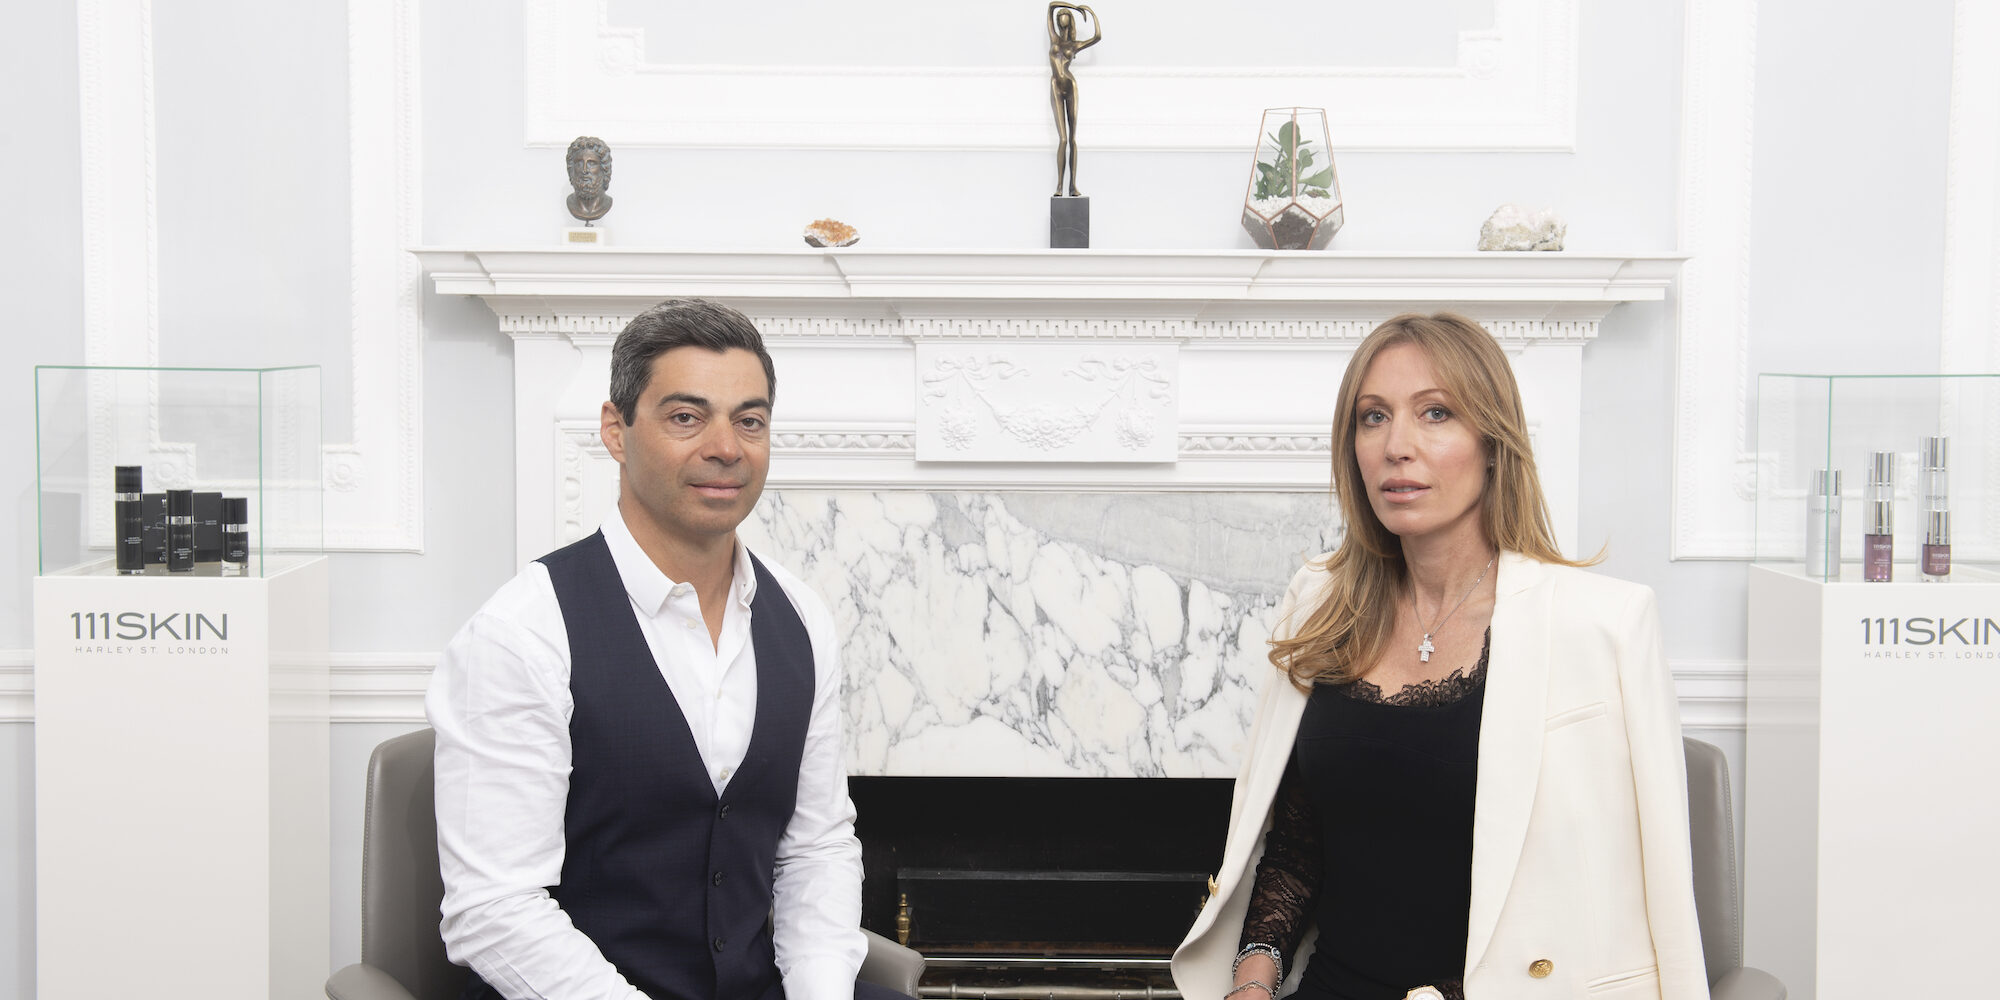 Luxury Brand 111Skin's Founders On Clinical Studies, Experiential Spas And Funding